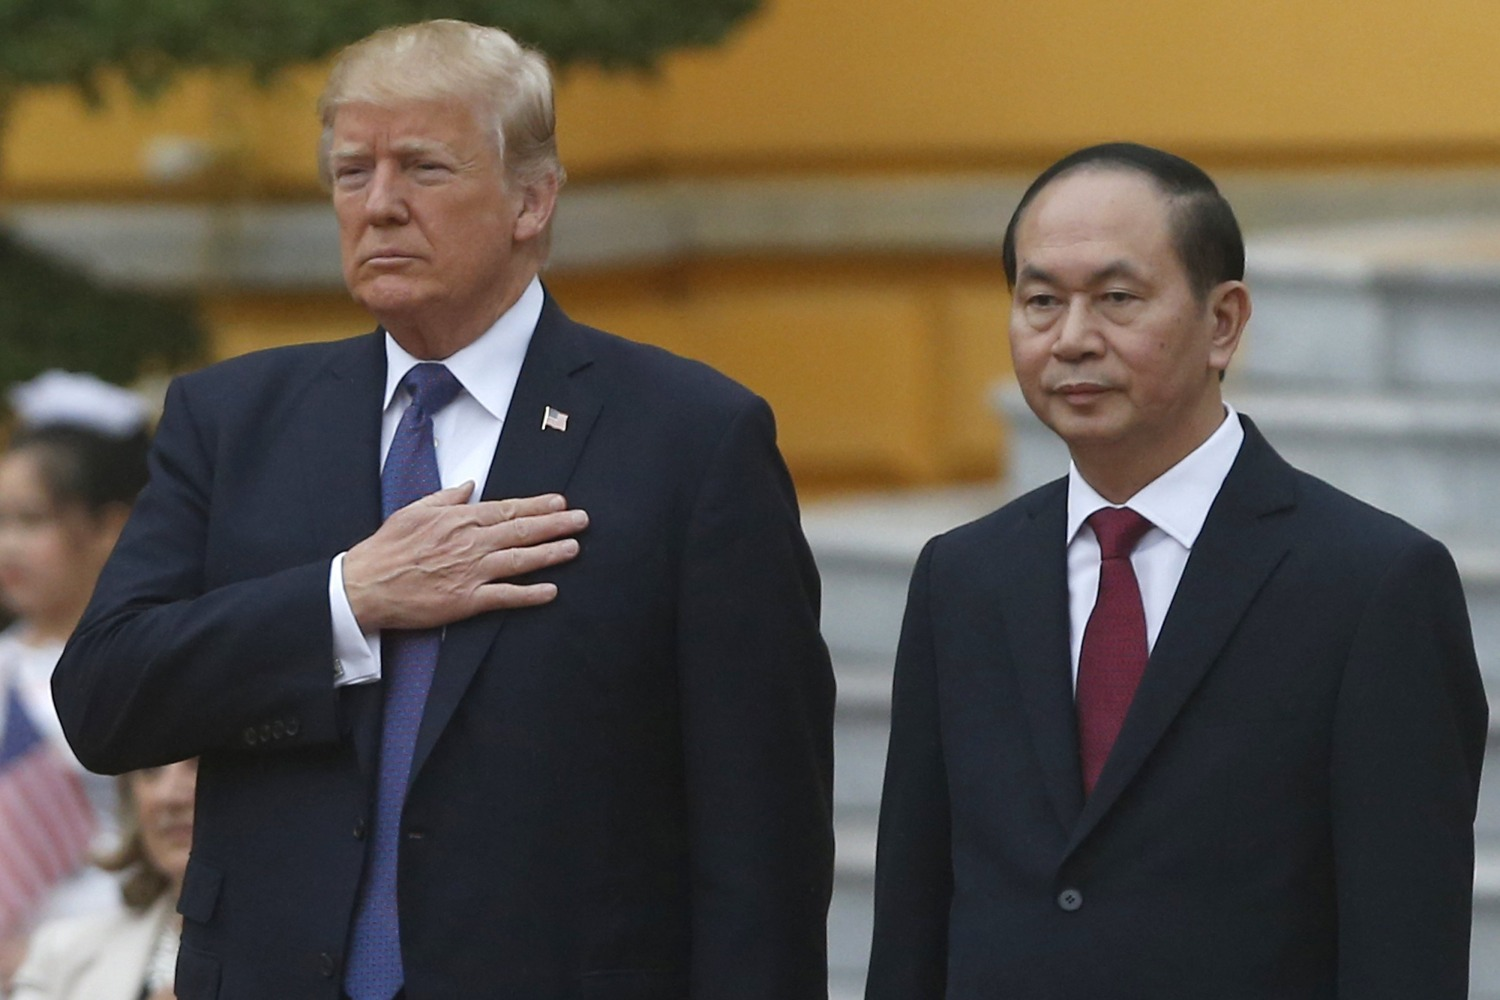 Trump offers to mediate in protracted South China Sea feud